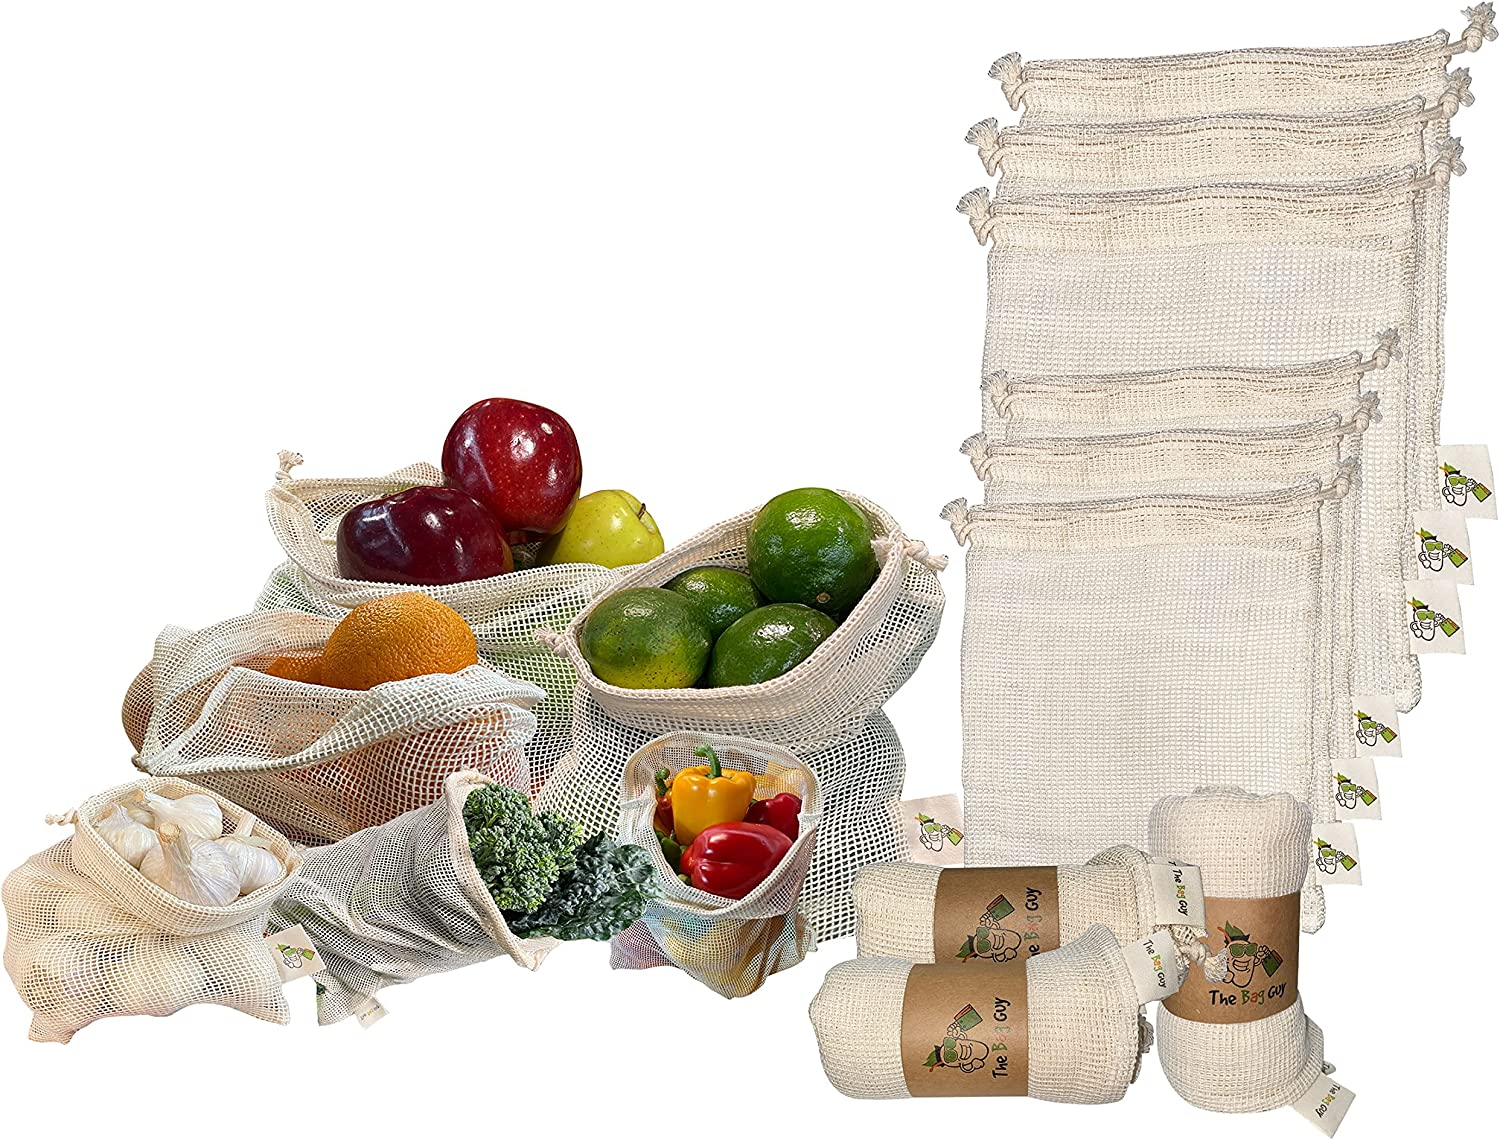 TheBagGuy - Organic Cotton Mesh Bags   Reusable Vegetable Produce Bags   Multipurpose Biodegradable Zero Waste Grocery Bag   Washable   Food Safe   Drawstring Closure   Quality Double Stitched(6 Pack)